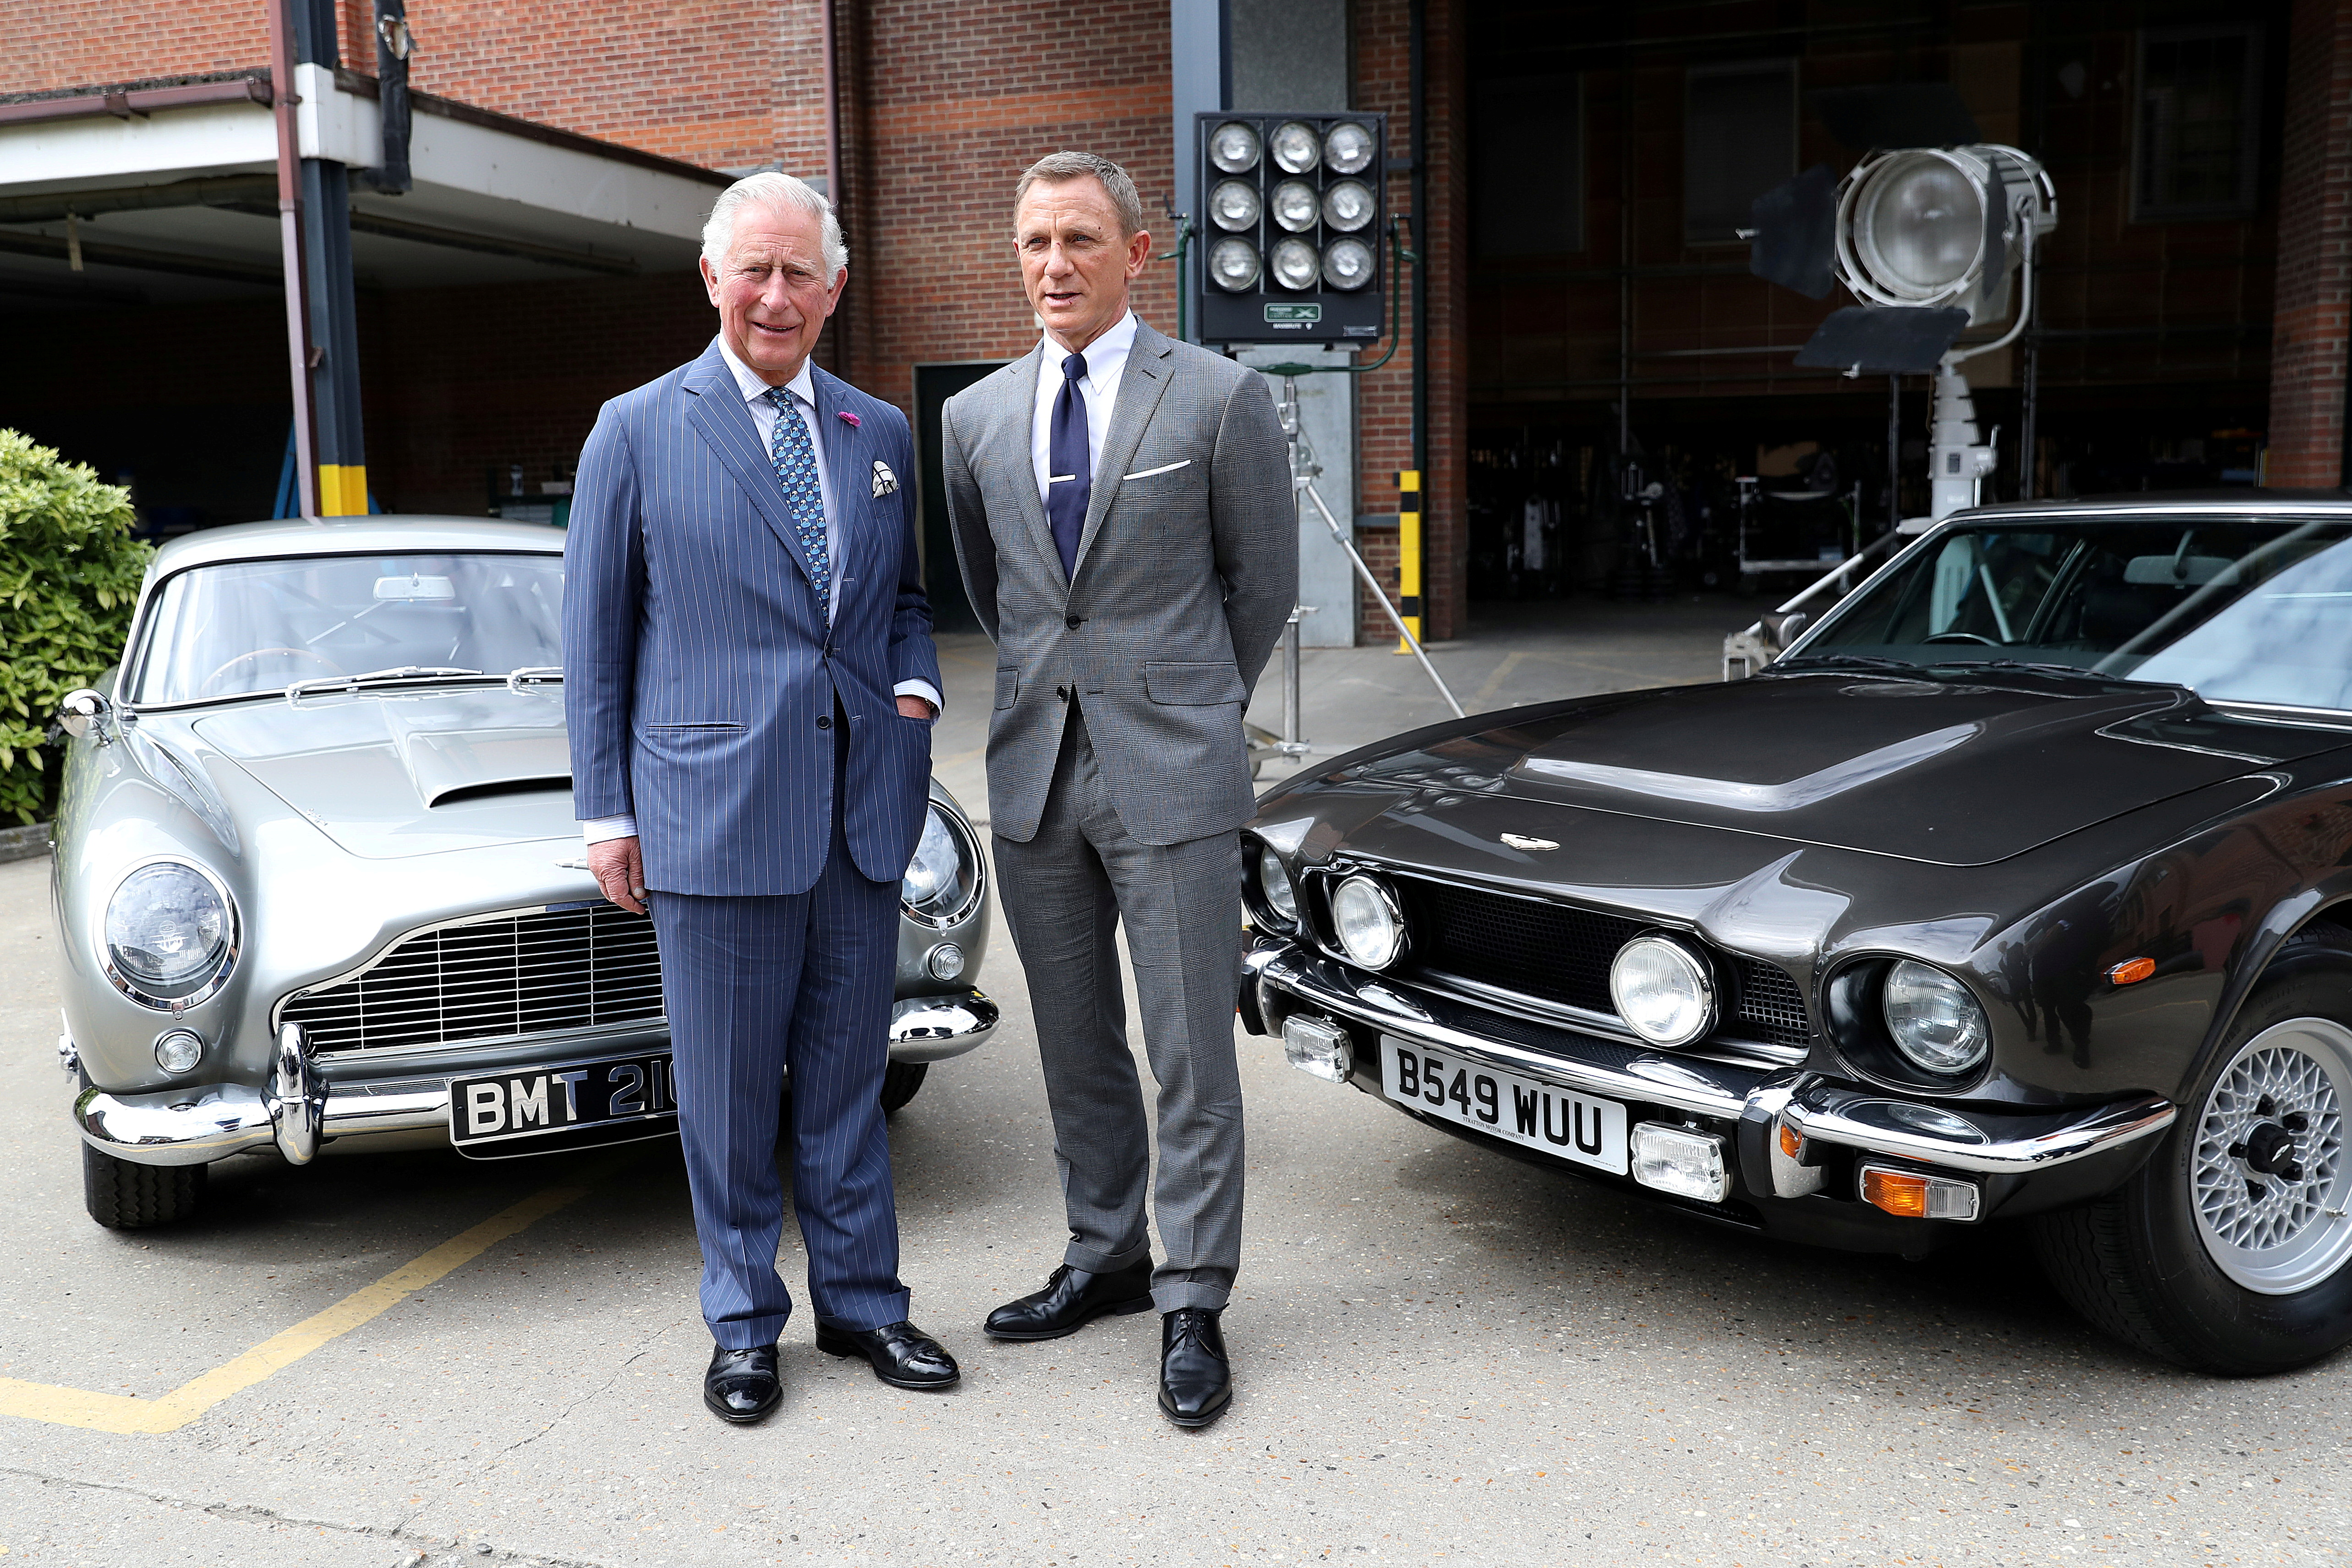 Prince Charles poses with British actor Daniel Craig as he tours the set of the 25th James Bond Film at Pinewood Studios in Iver Heath, Buckinghamshire, Britain June 20, 2019. Chris Jackson/Pool via REUTERS/File Photo